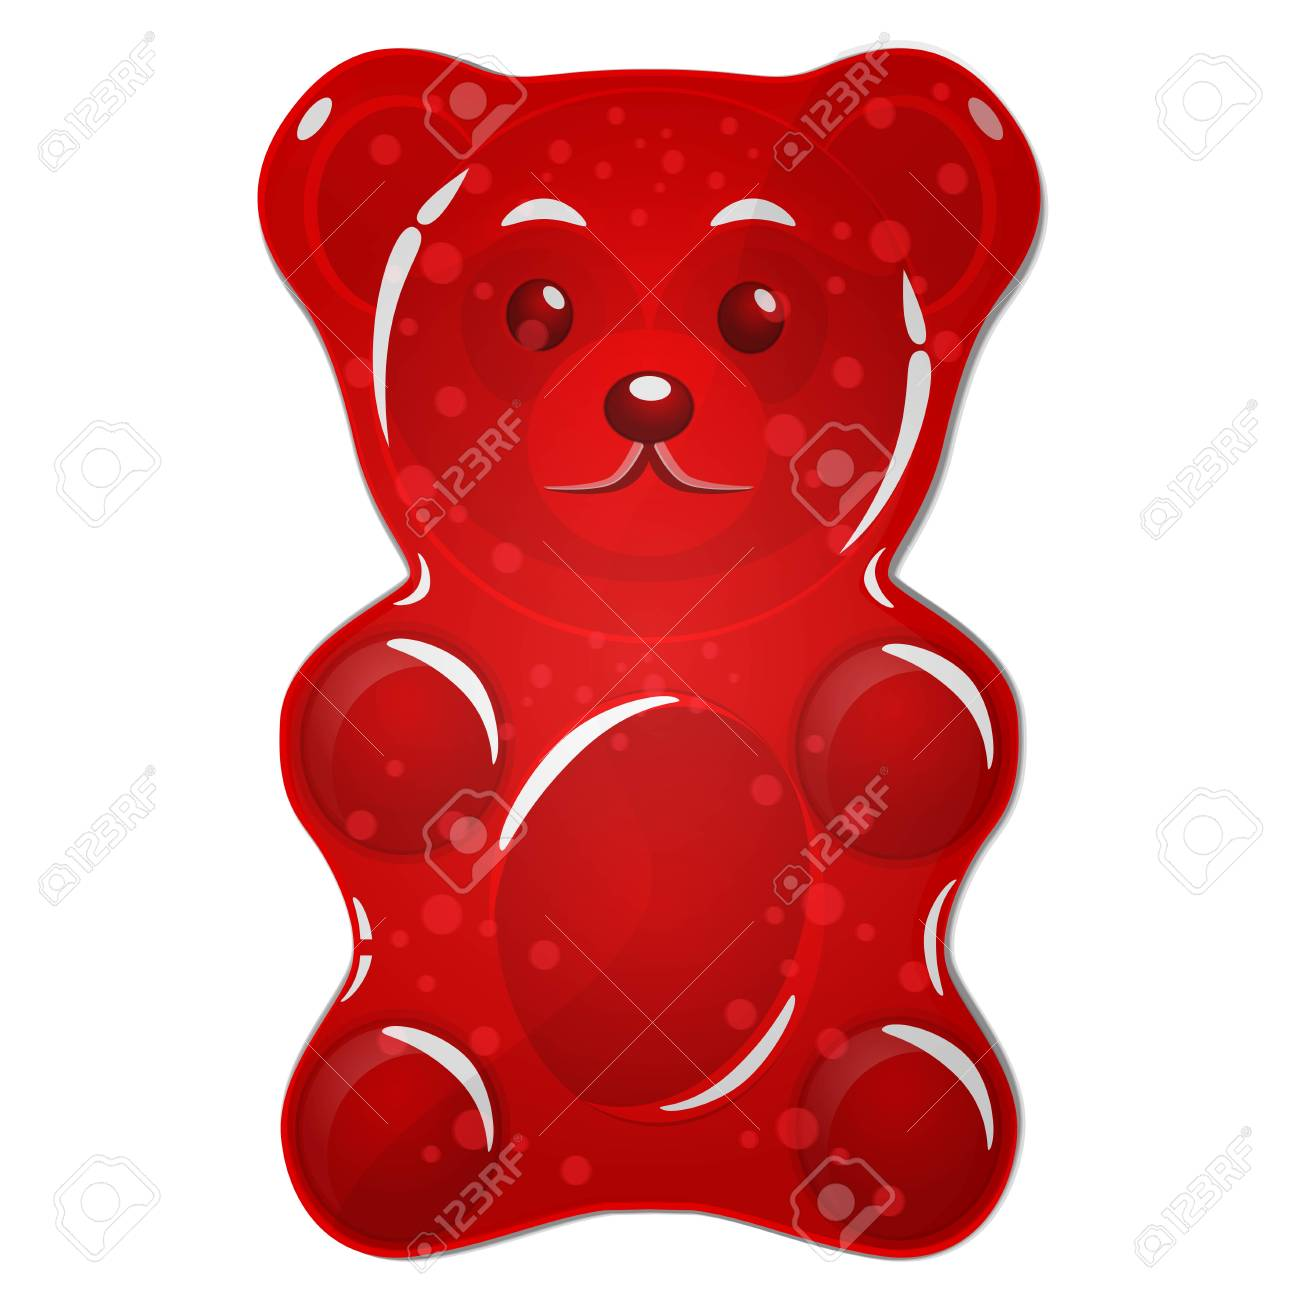 red gummy bear candy isolated on white background royalty free